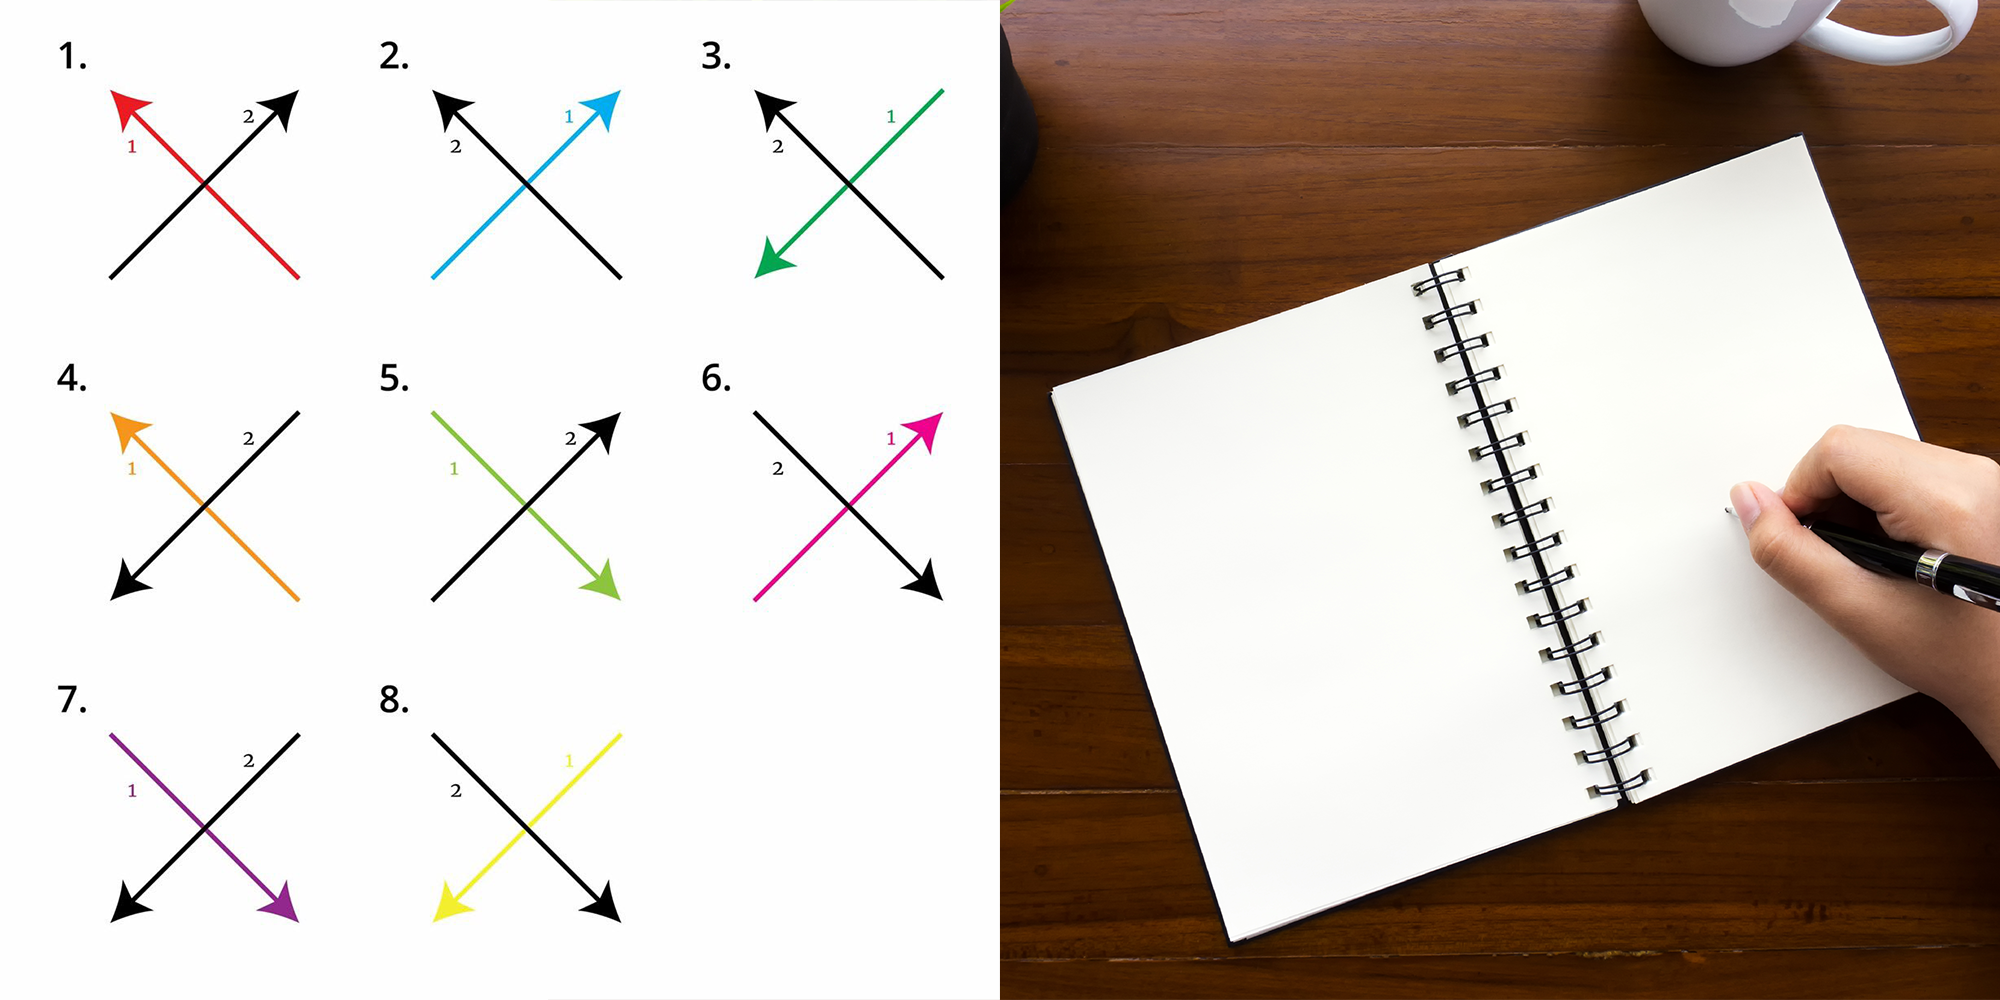 How You Draw an 'X' Reveals a Lot About Your Personality